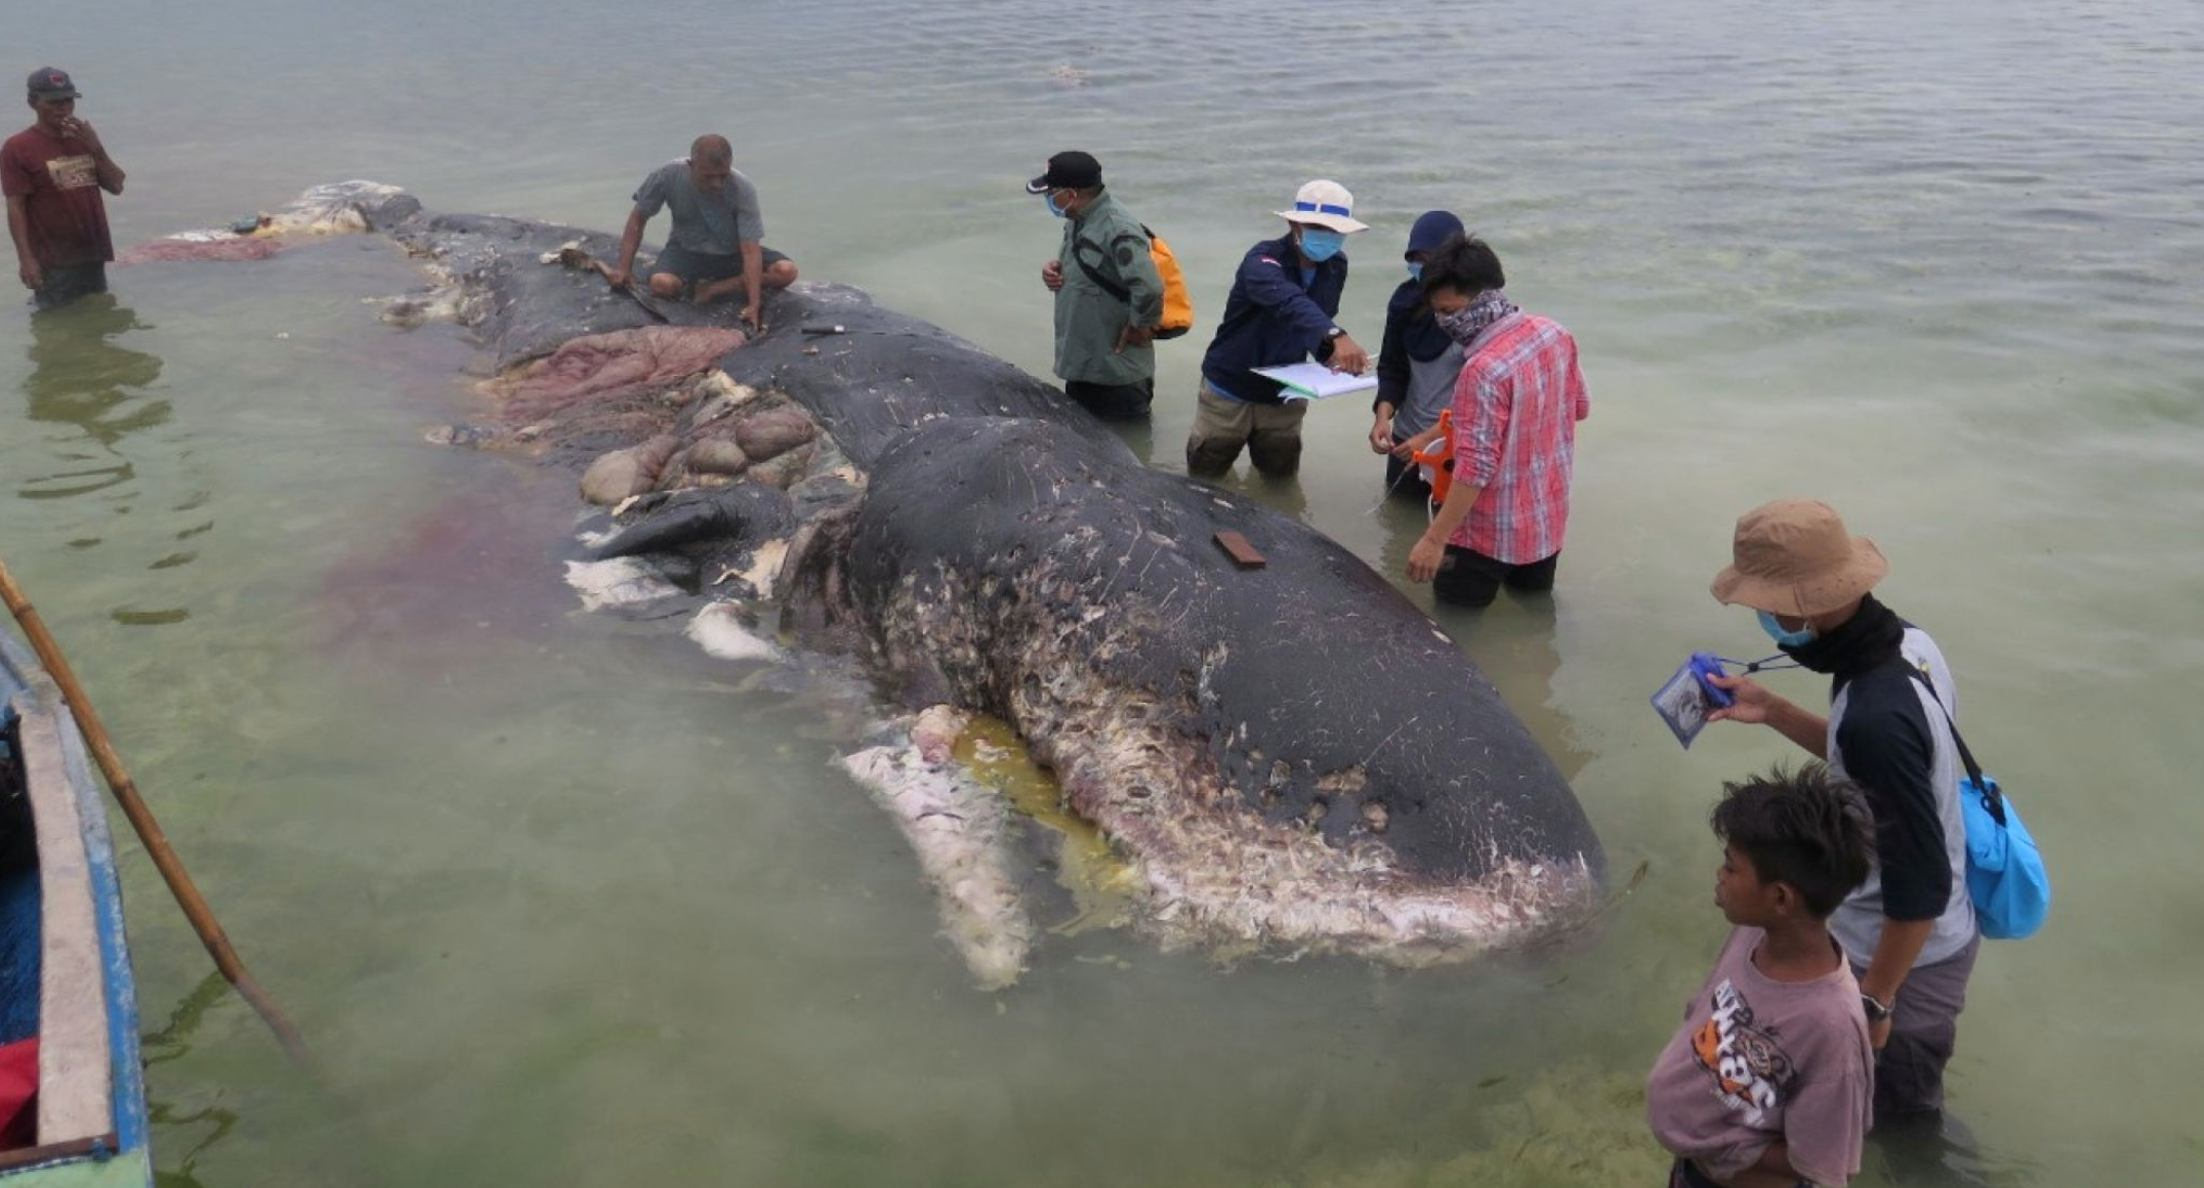 Dead whale washes up in Indonsesia with stomach full of plastic